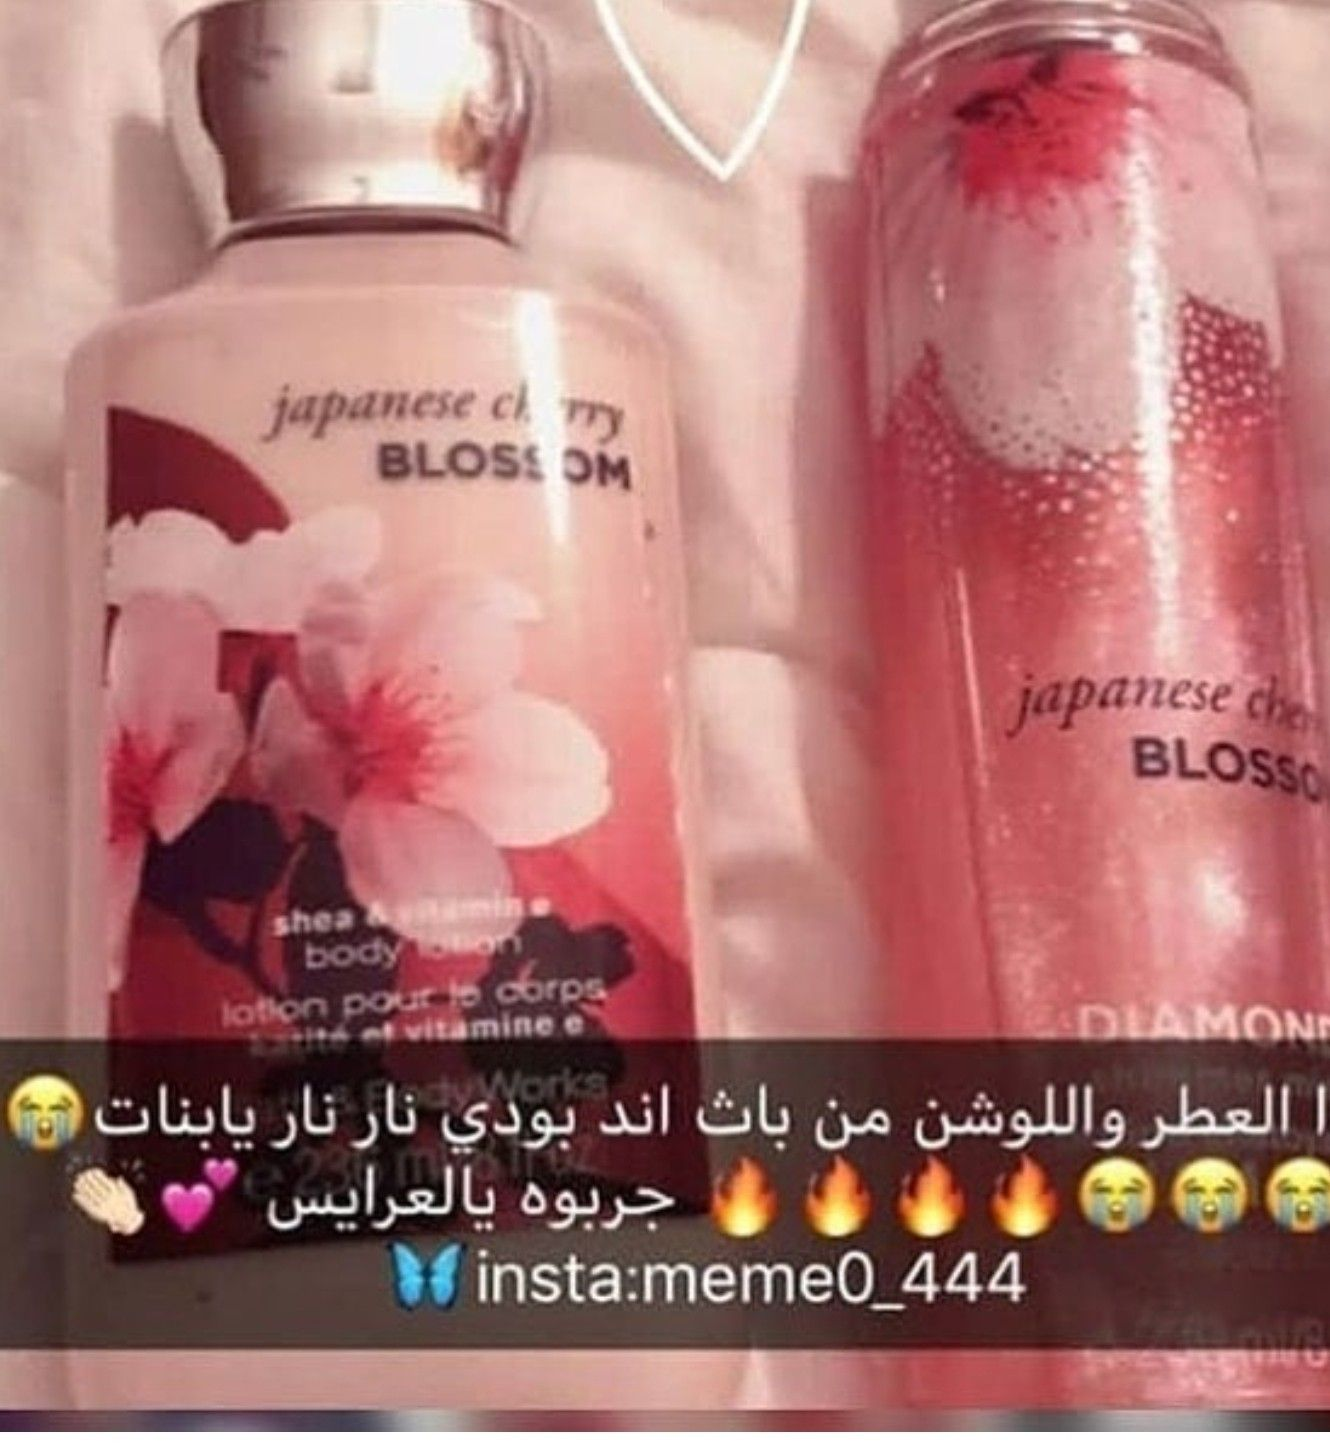 Pin By Asma On عطورات جاري تجربه Makeup Spray Beauty Skin Care Routine Body Skin Care